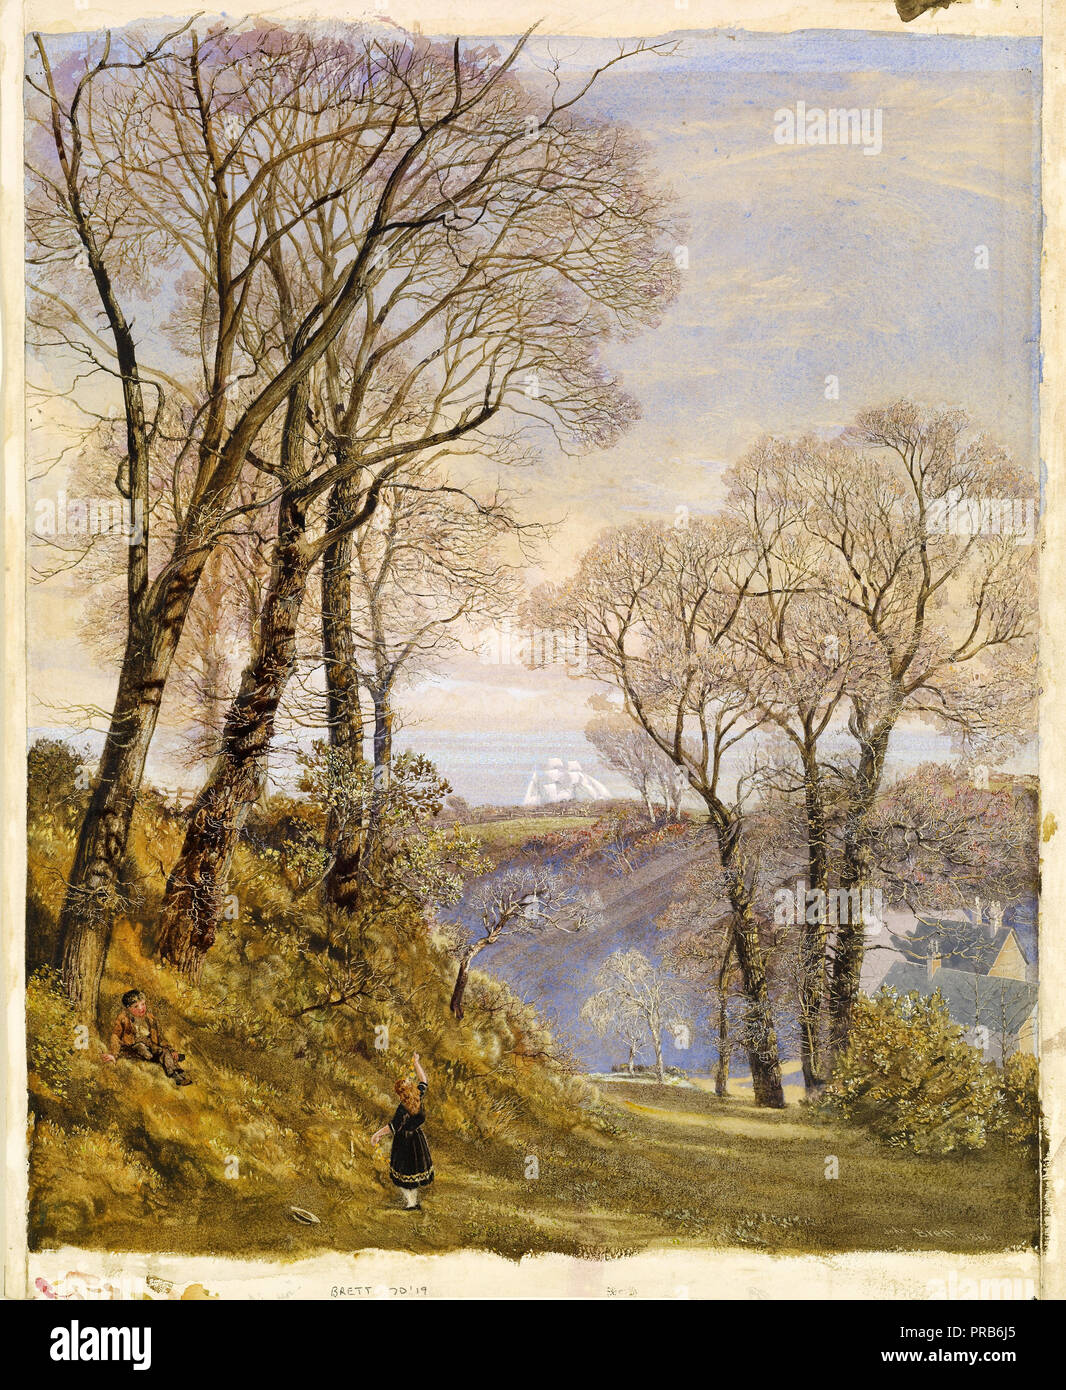 John Brett, February in the Isle of Wight 1866 Watercolor on paper, Birmingham Museum and Art Gallery, England. - Stock Image